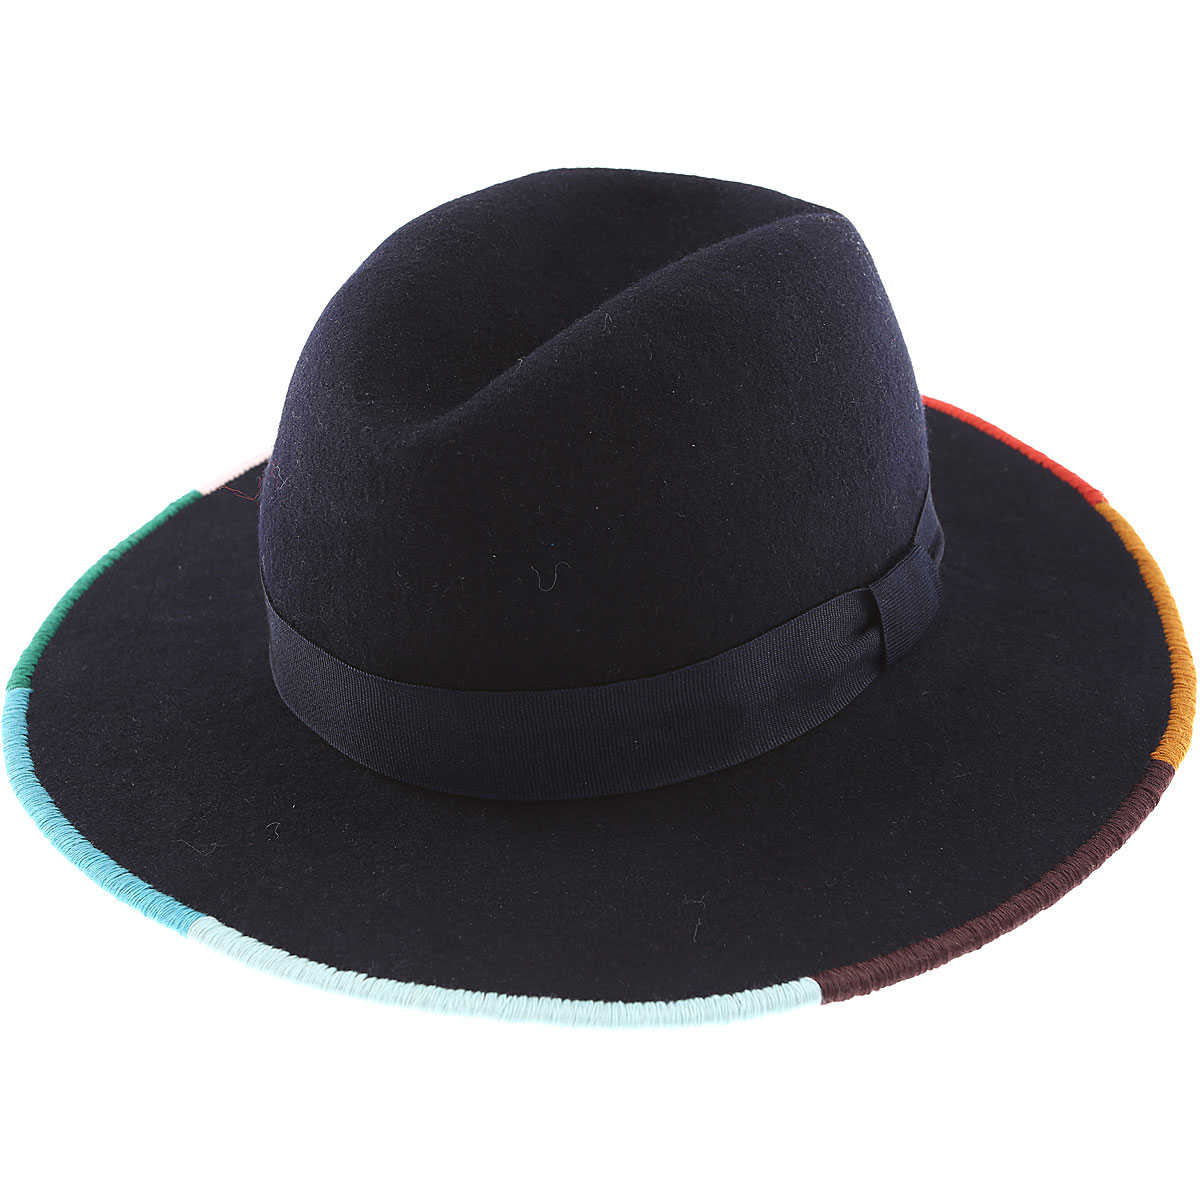 Paul Smith Hat for Women Dark Midnight Blue SE - GOOFASH